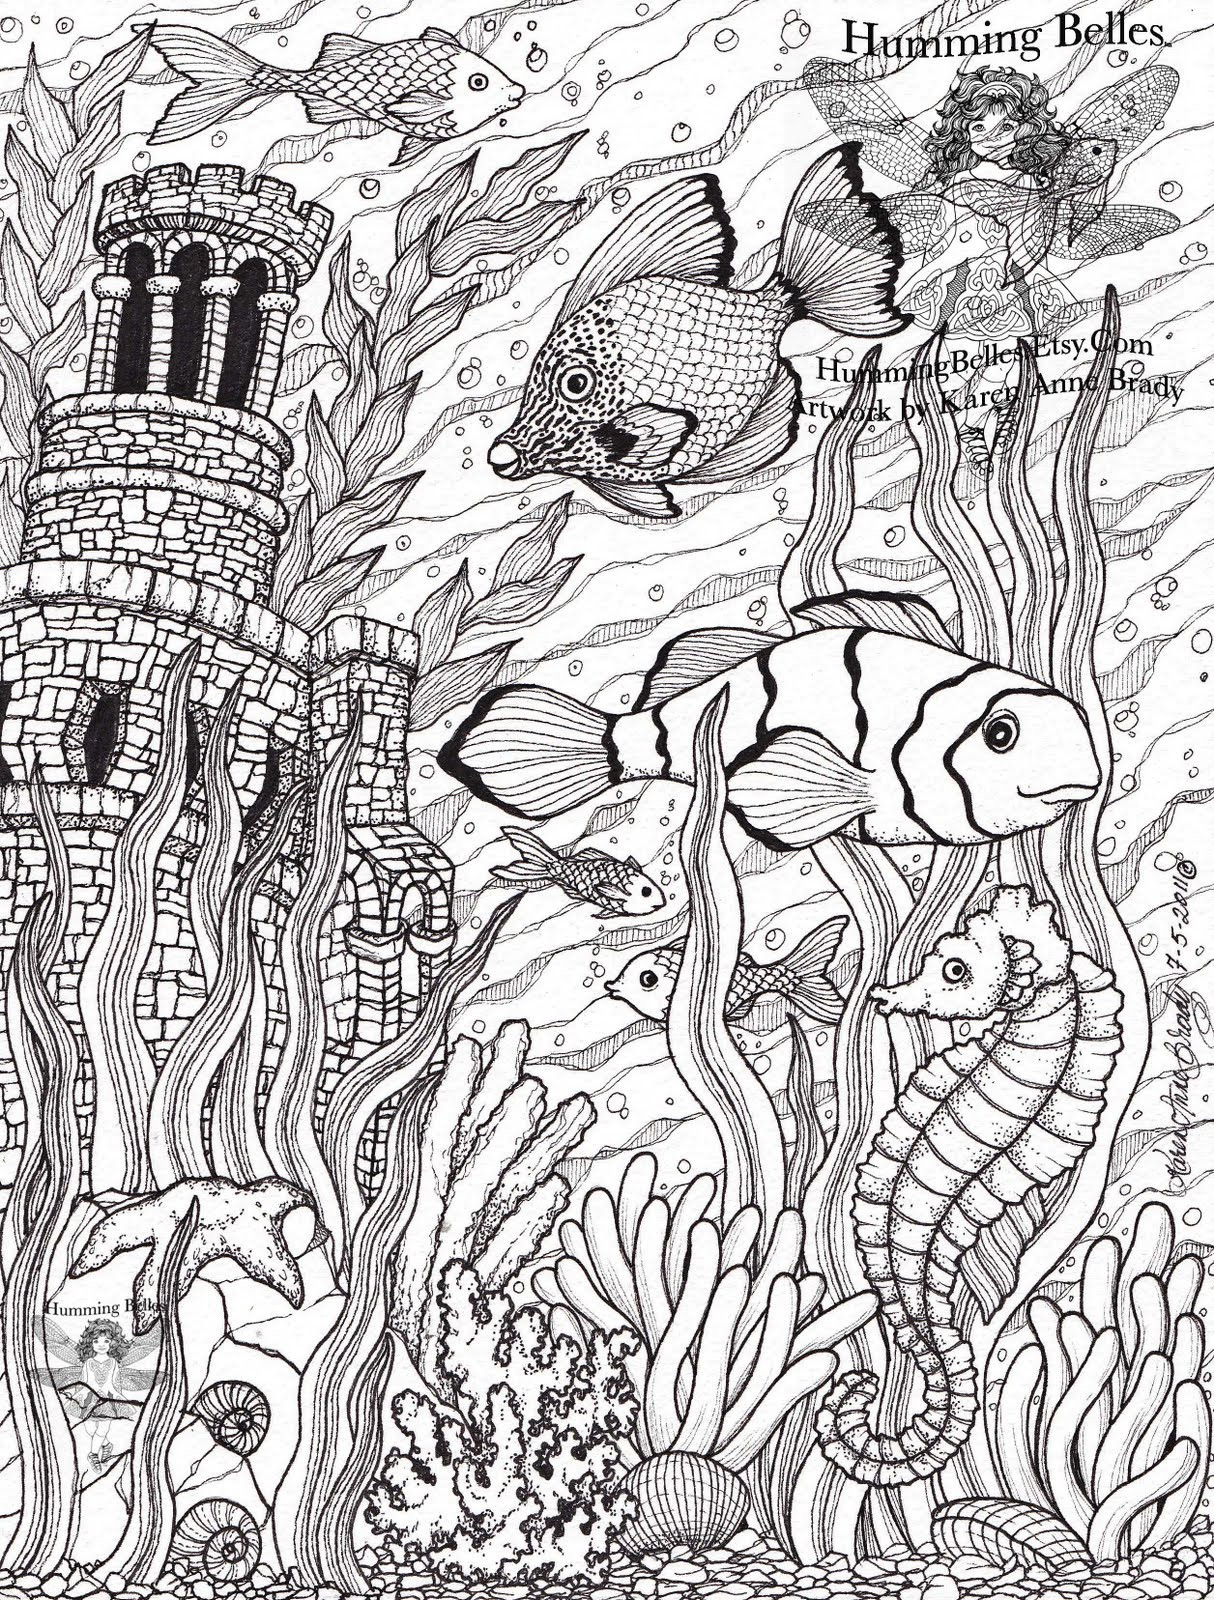 """Best ideas about Detailed Coloring Pages For Adults . Save or Pin Humming Belles"""" New Undersea Illustrations and Now."""